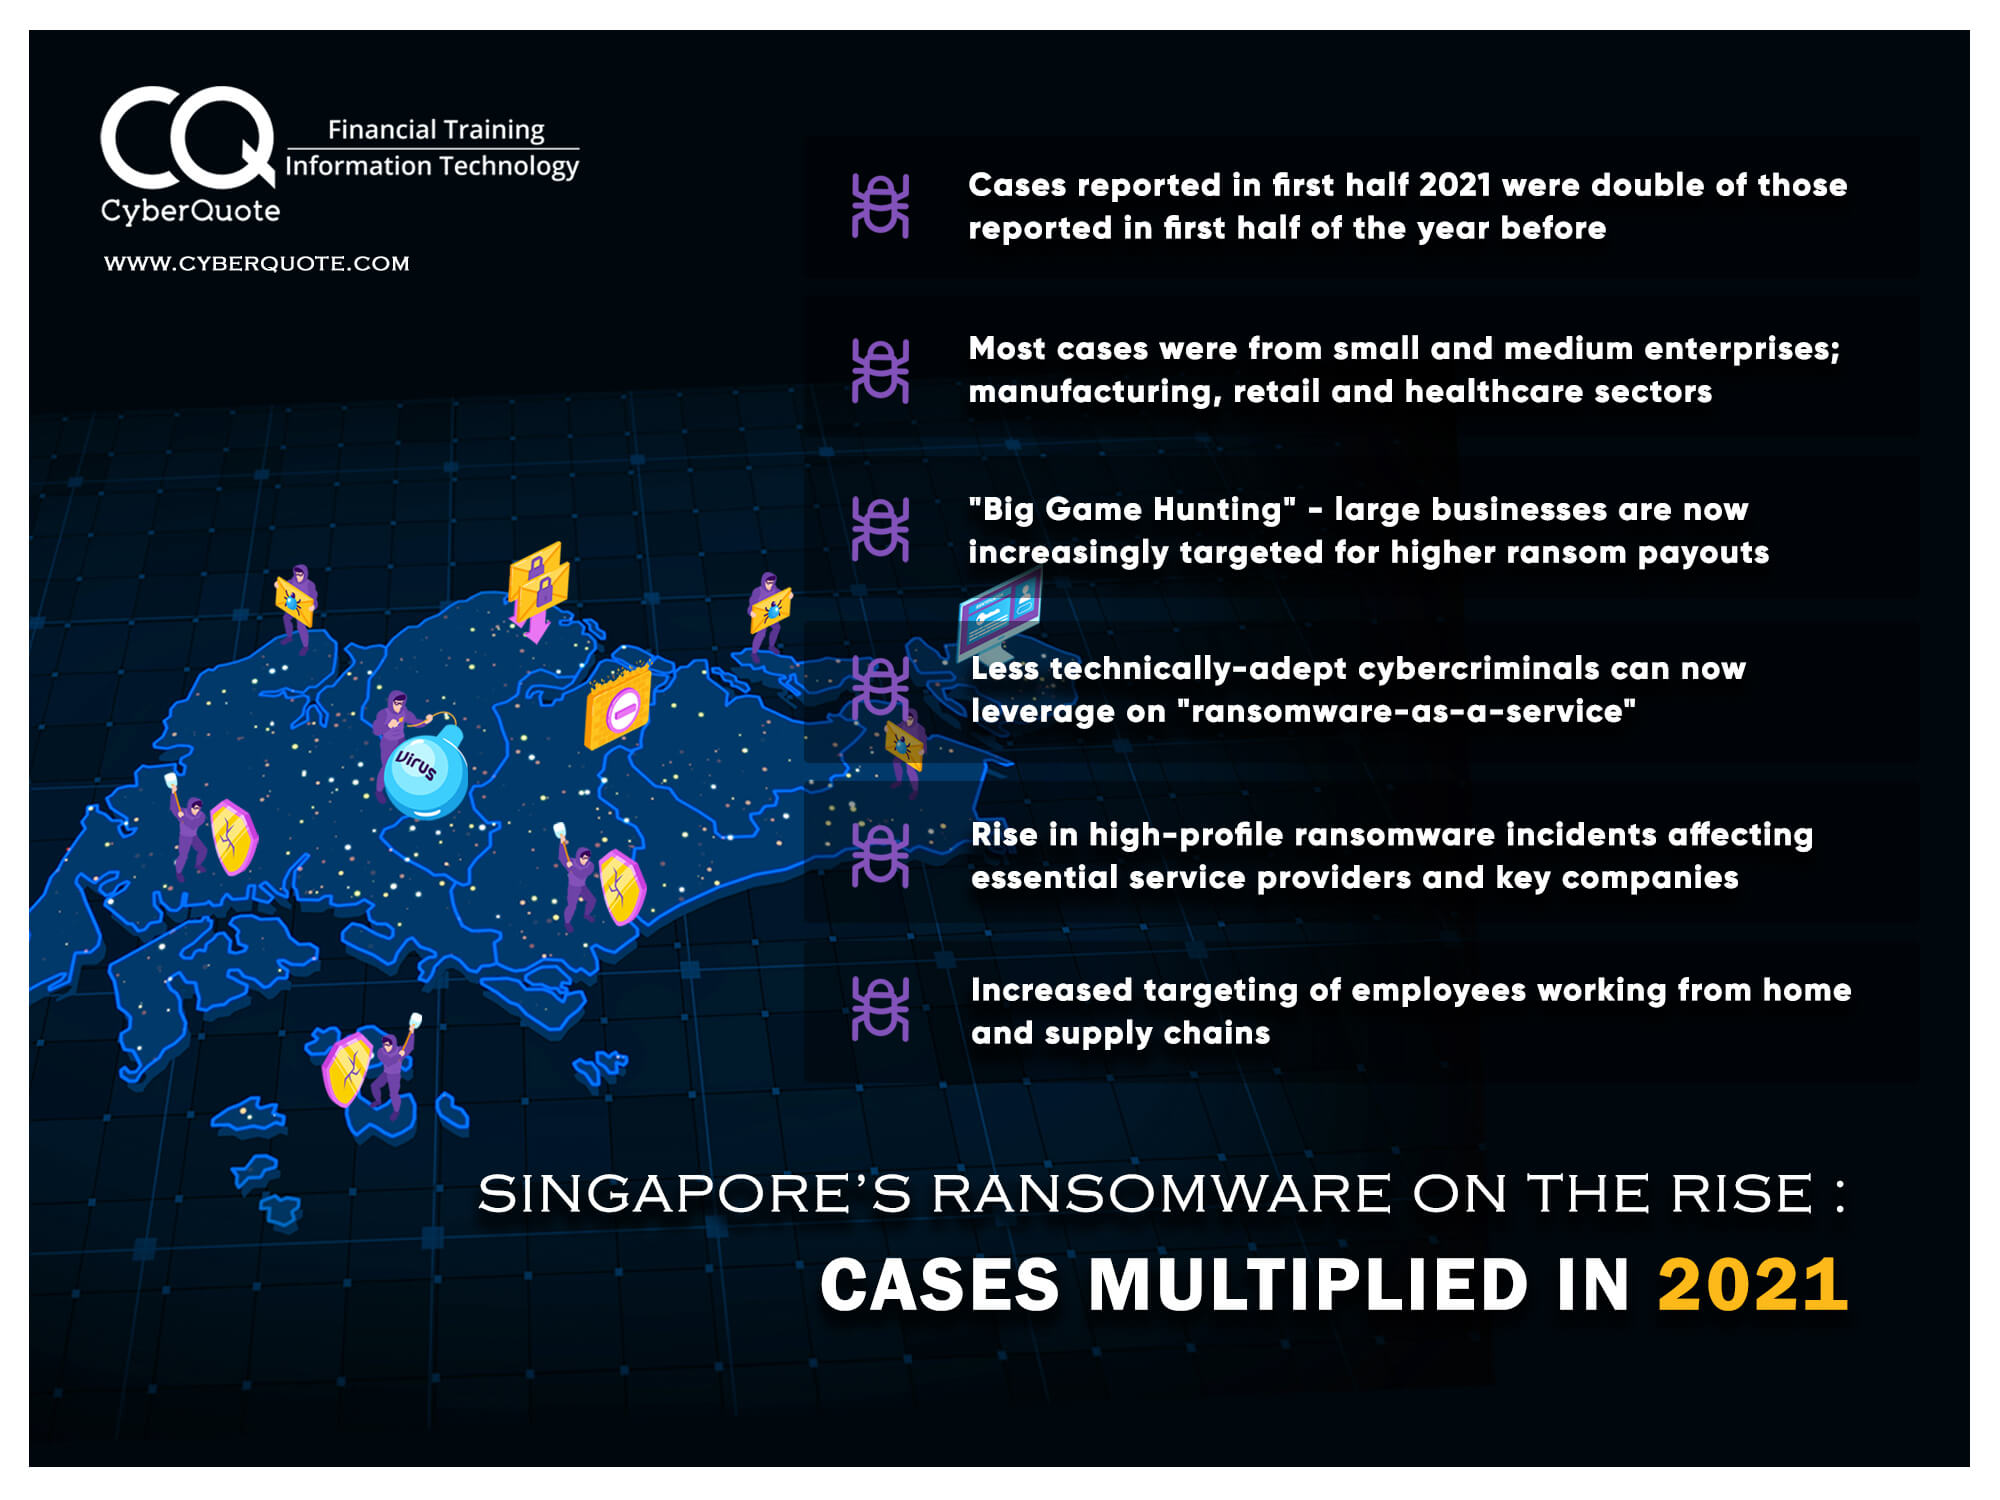 Singapores Ransomware on the Rise